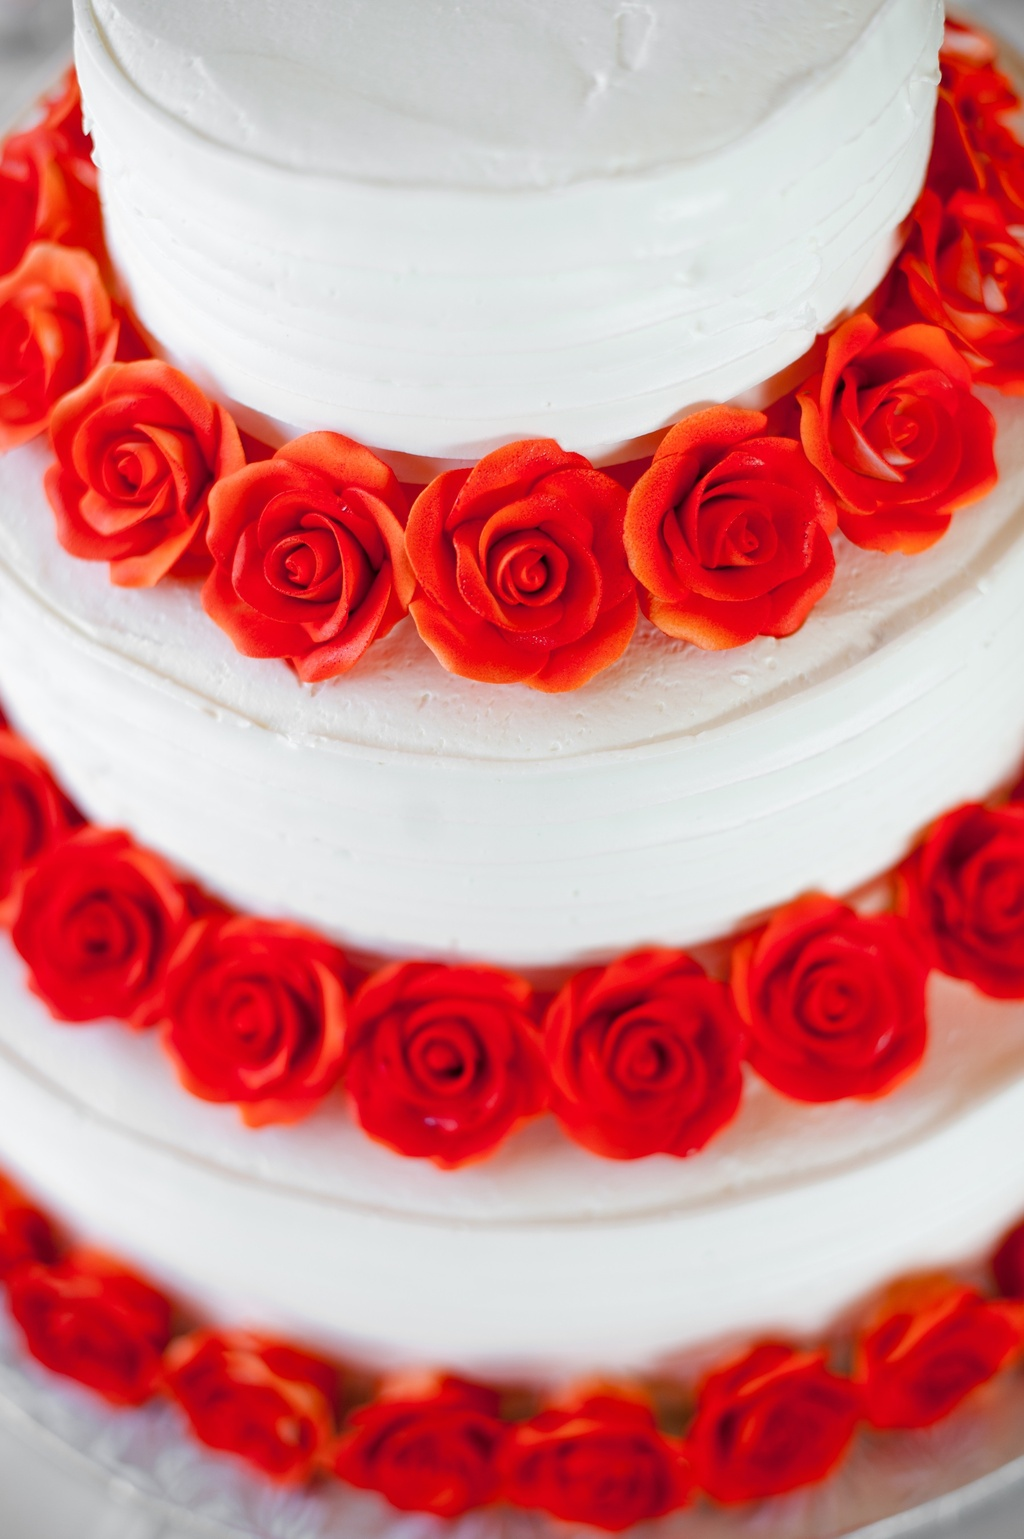 Elegant-real-wedding-with-simple-diy-details-white-wedding-cake-red-roses.full